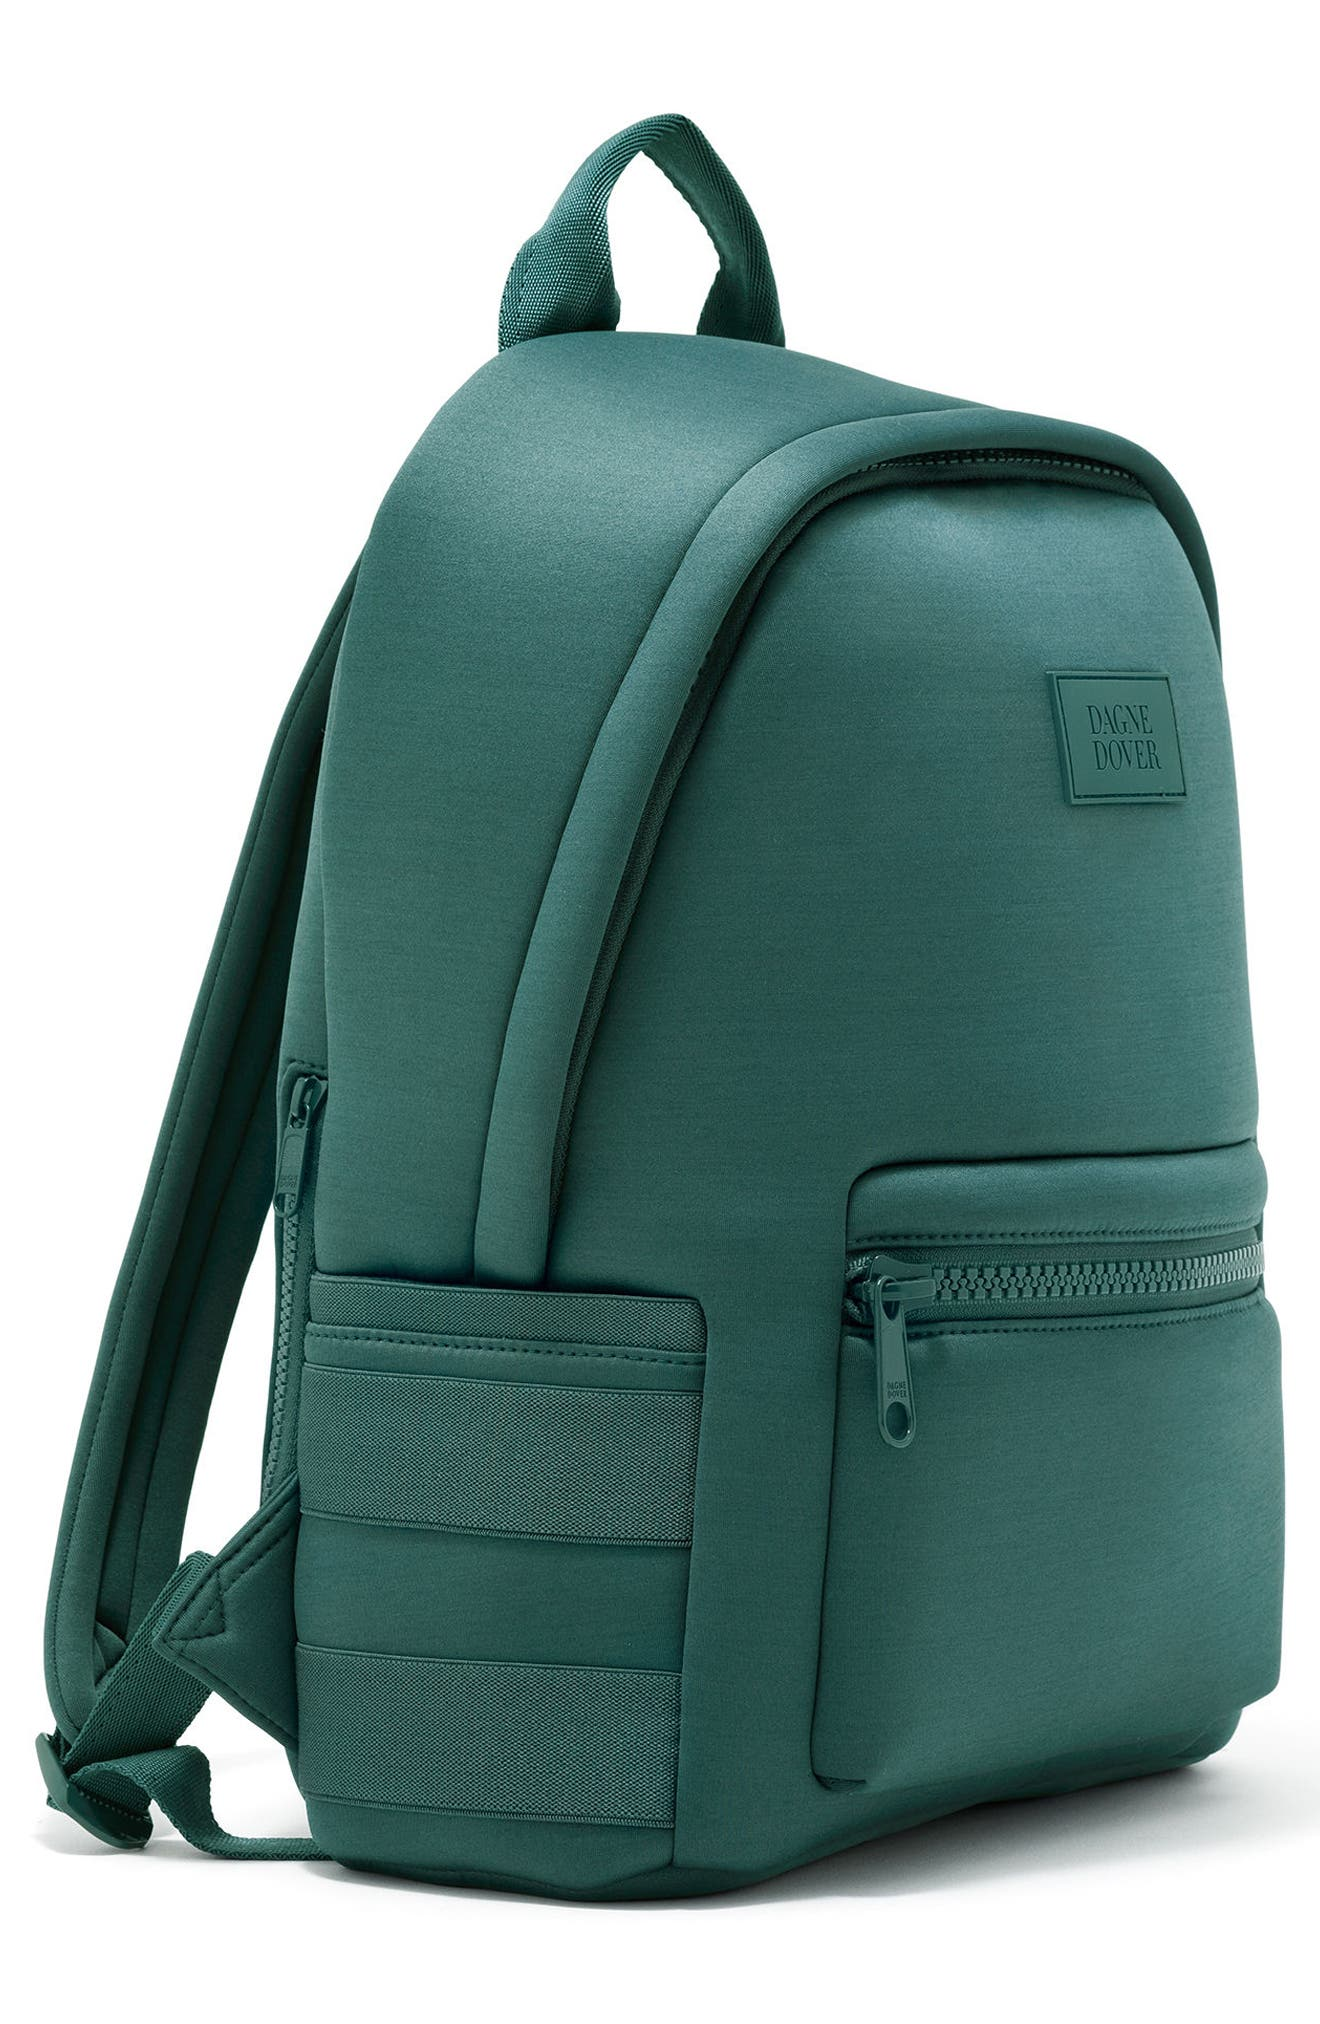 365 Dakota Neoprene Backpack,                             Alternate thumbnail 5, color,                             Palm